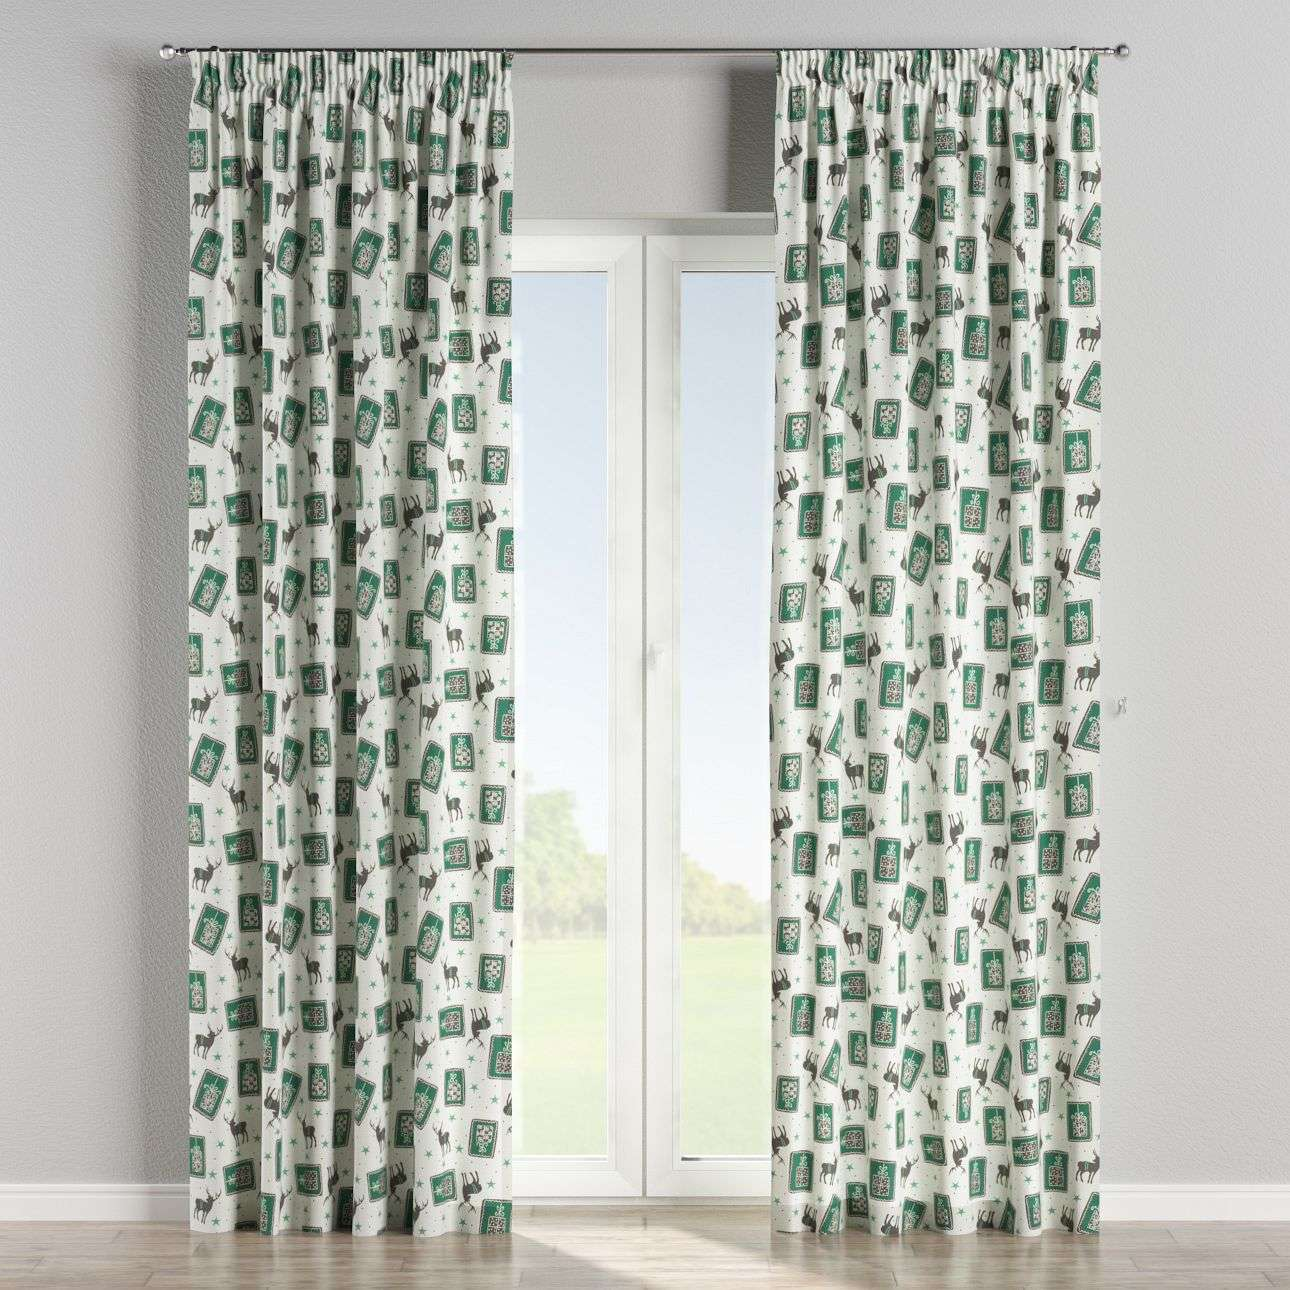 Pencil pleat curtains 130 x 260 cm (51 x 102 inch) in collection Nordic, fabric: 630-13